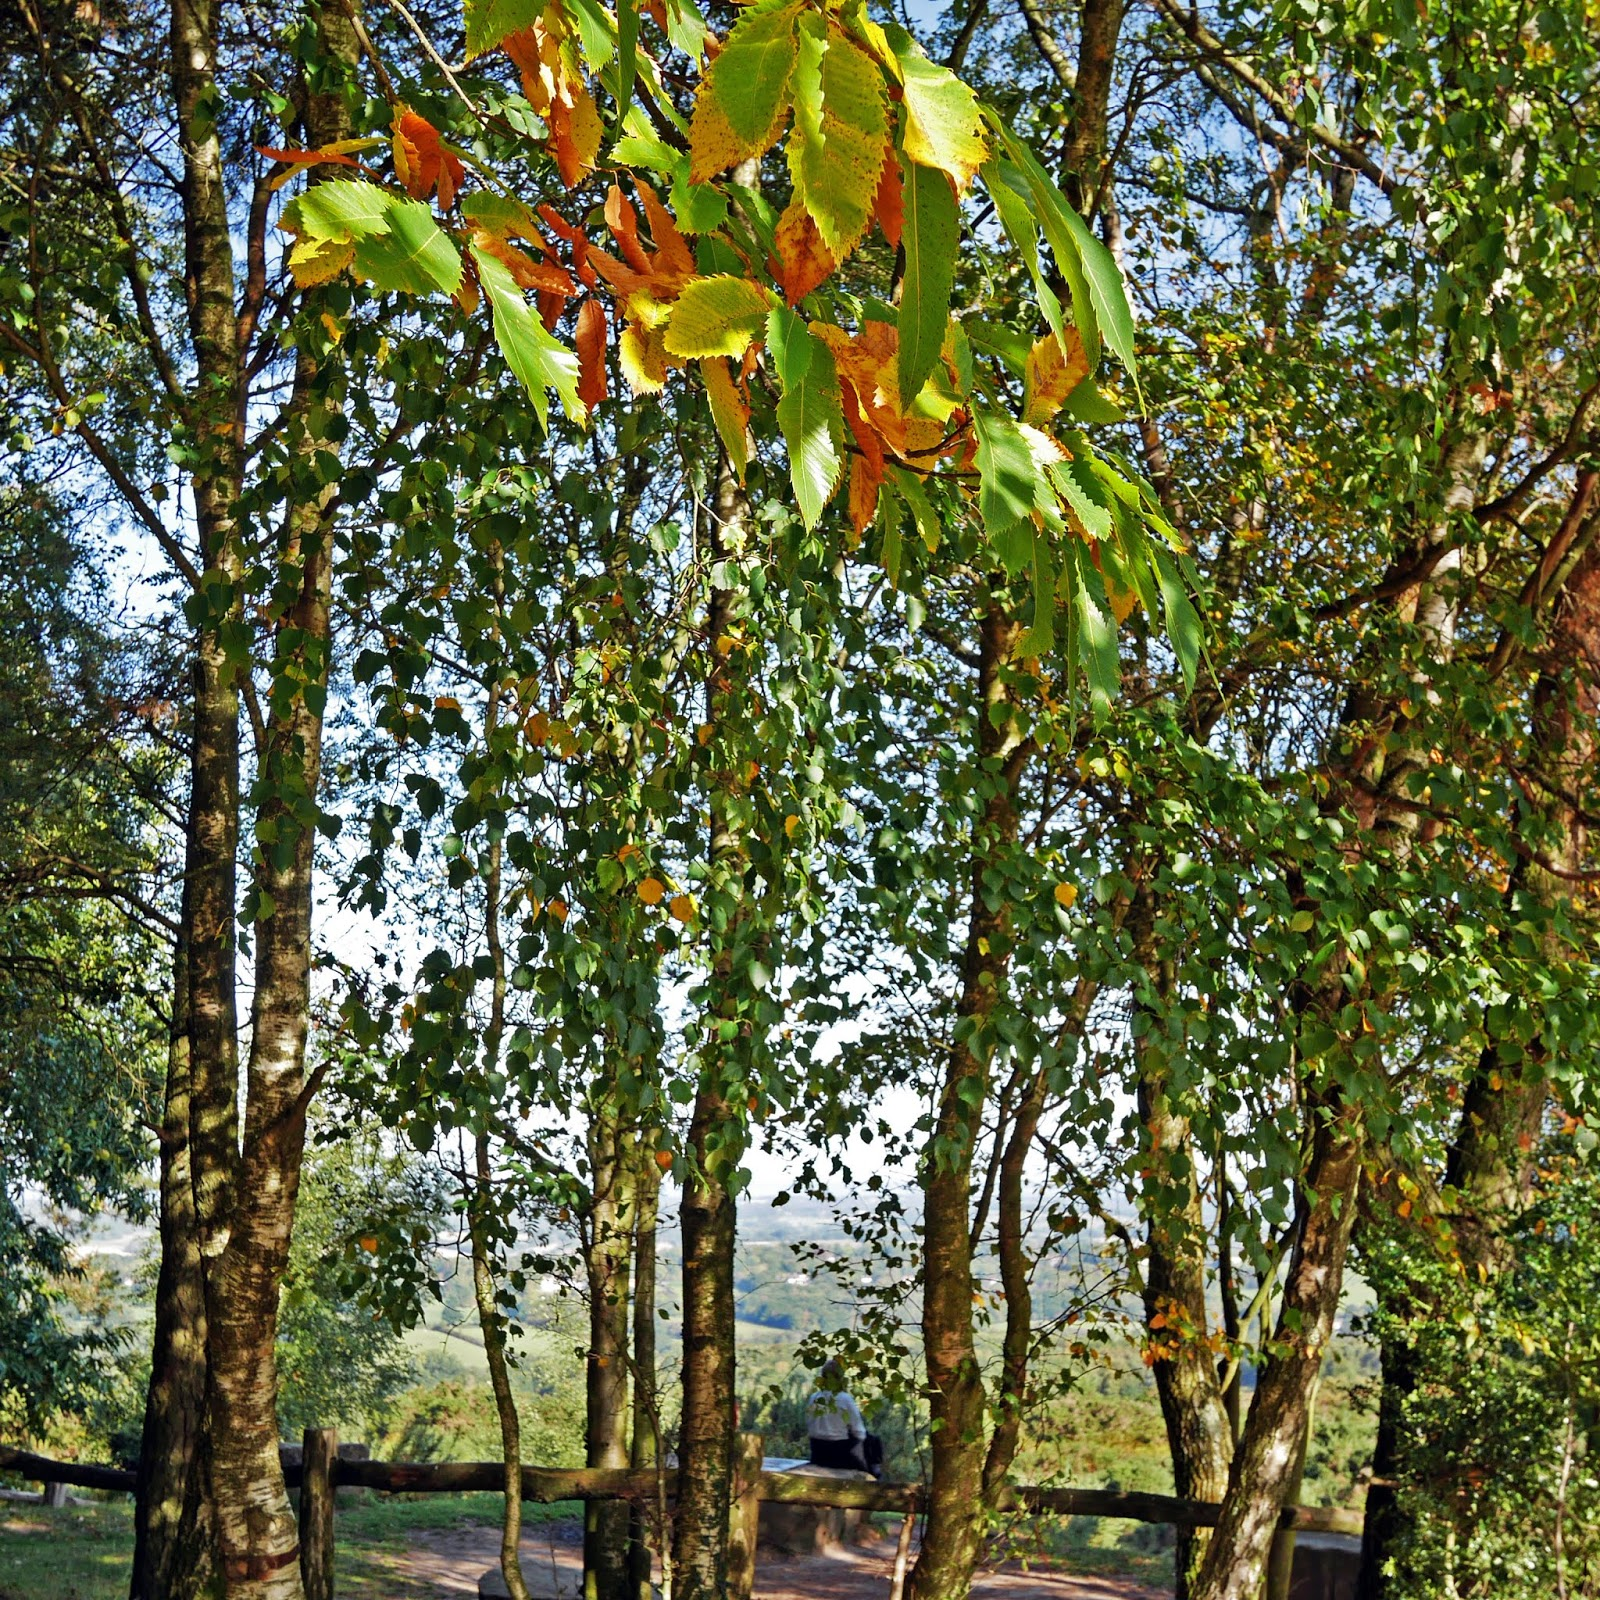 Autumn leaves near the A.A. Milne and E.H. Shepard Memorial, Ashdown Forest